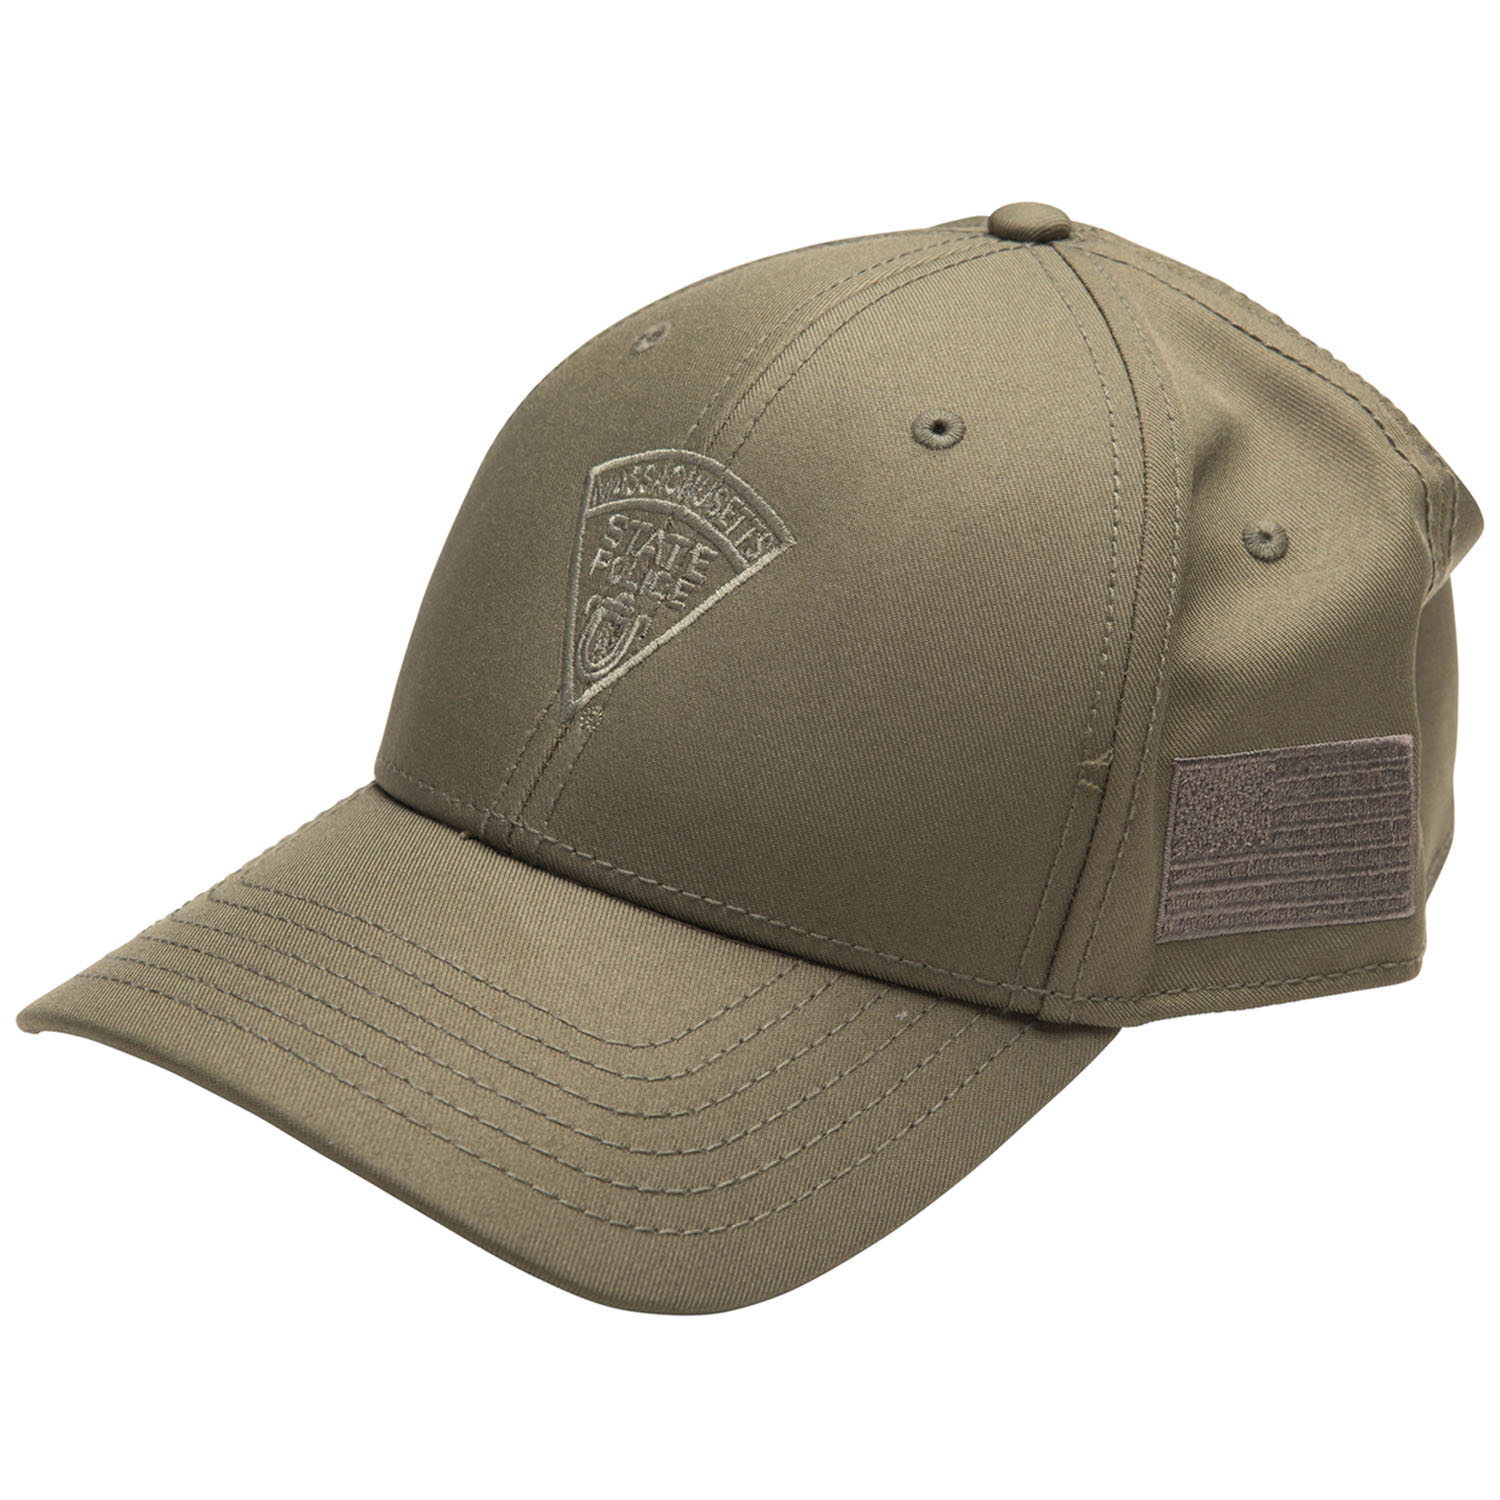 843f5e8ca6f Under Armour Baseball Hat. Touch to zoom